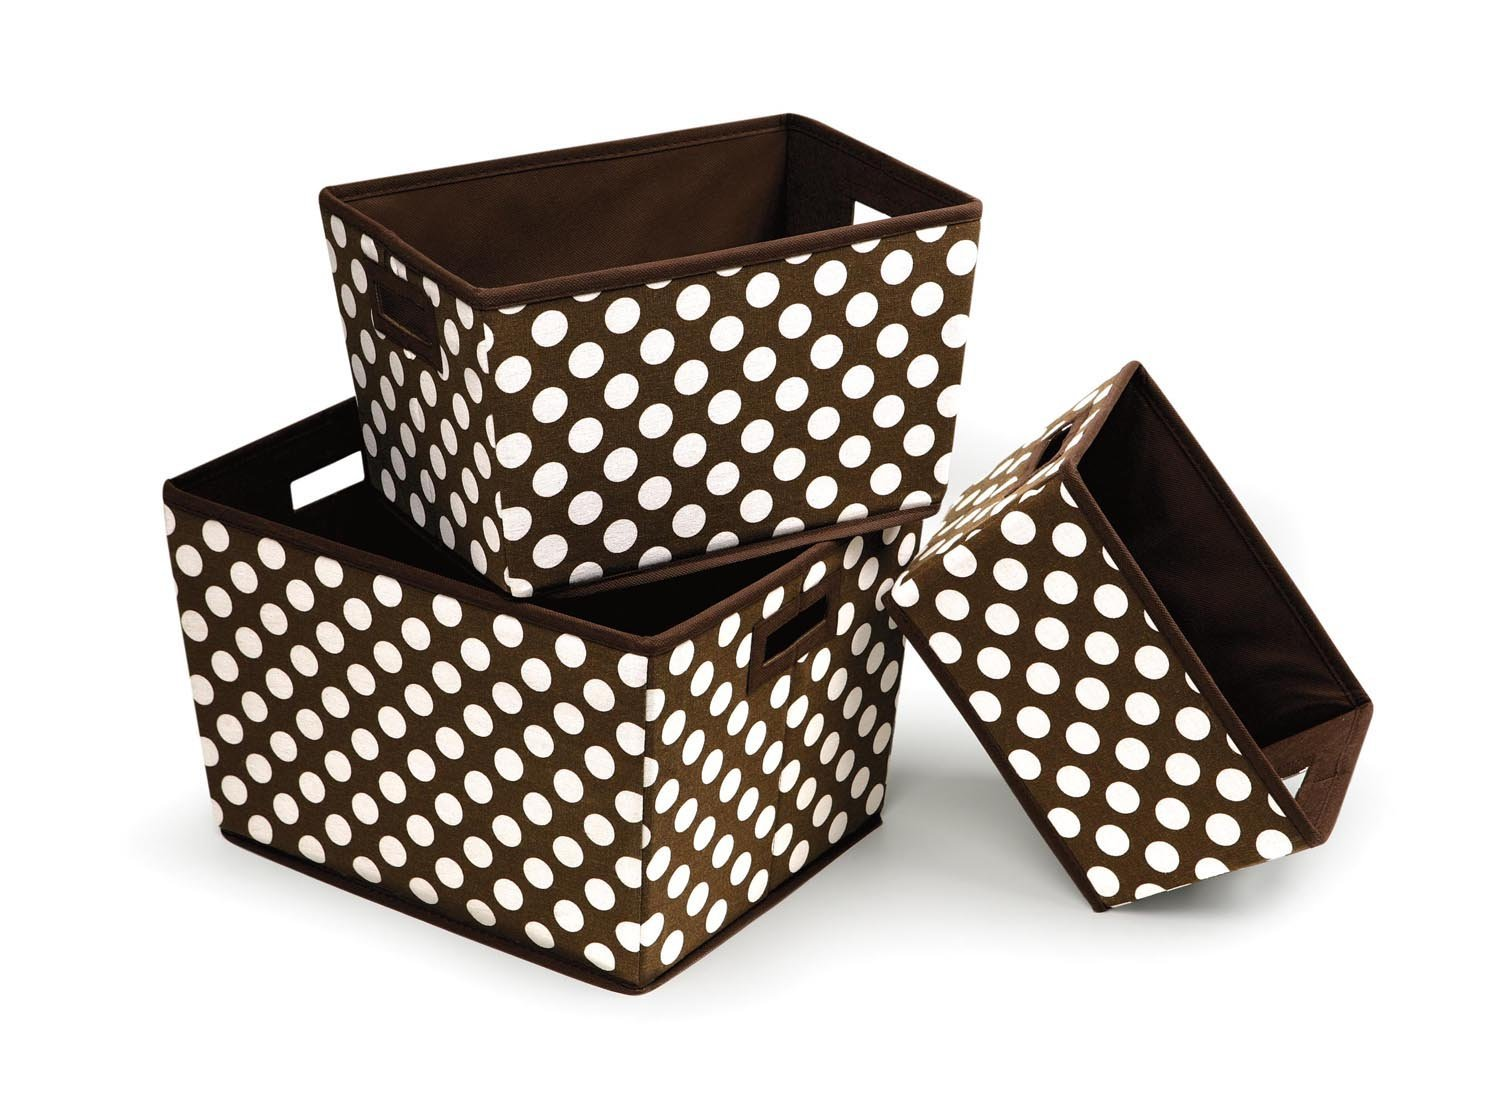 3 Pack Polka Dot Nesting Trapezoid Folding Baskets, Brown, Fabric By Badger Basket by